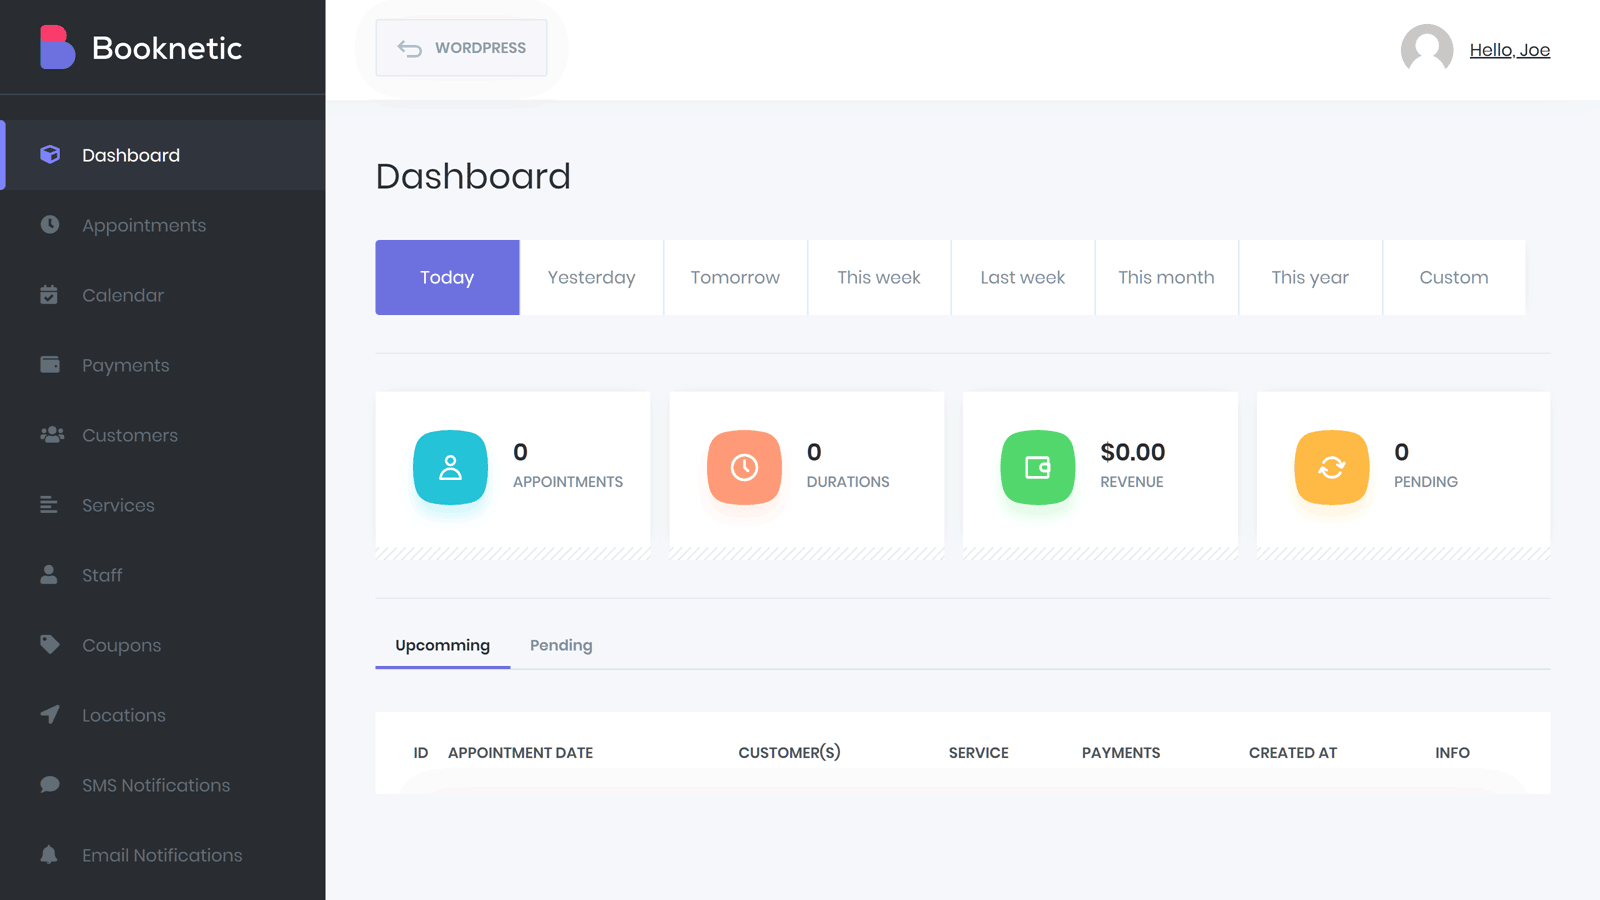 Booknetic Dashboard